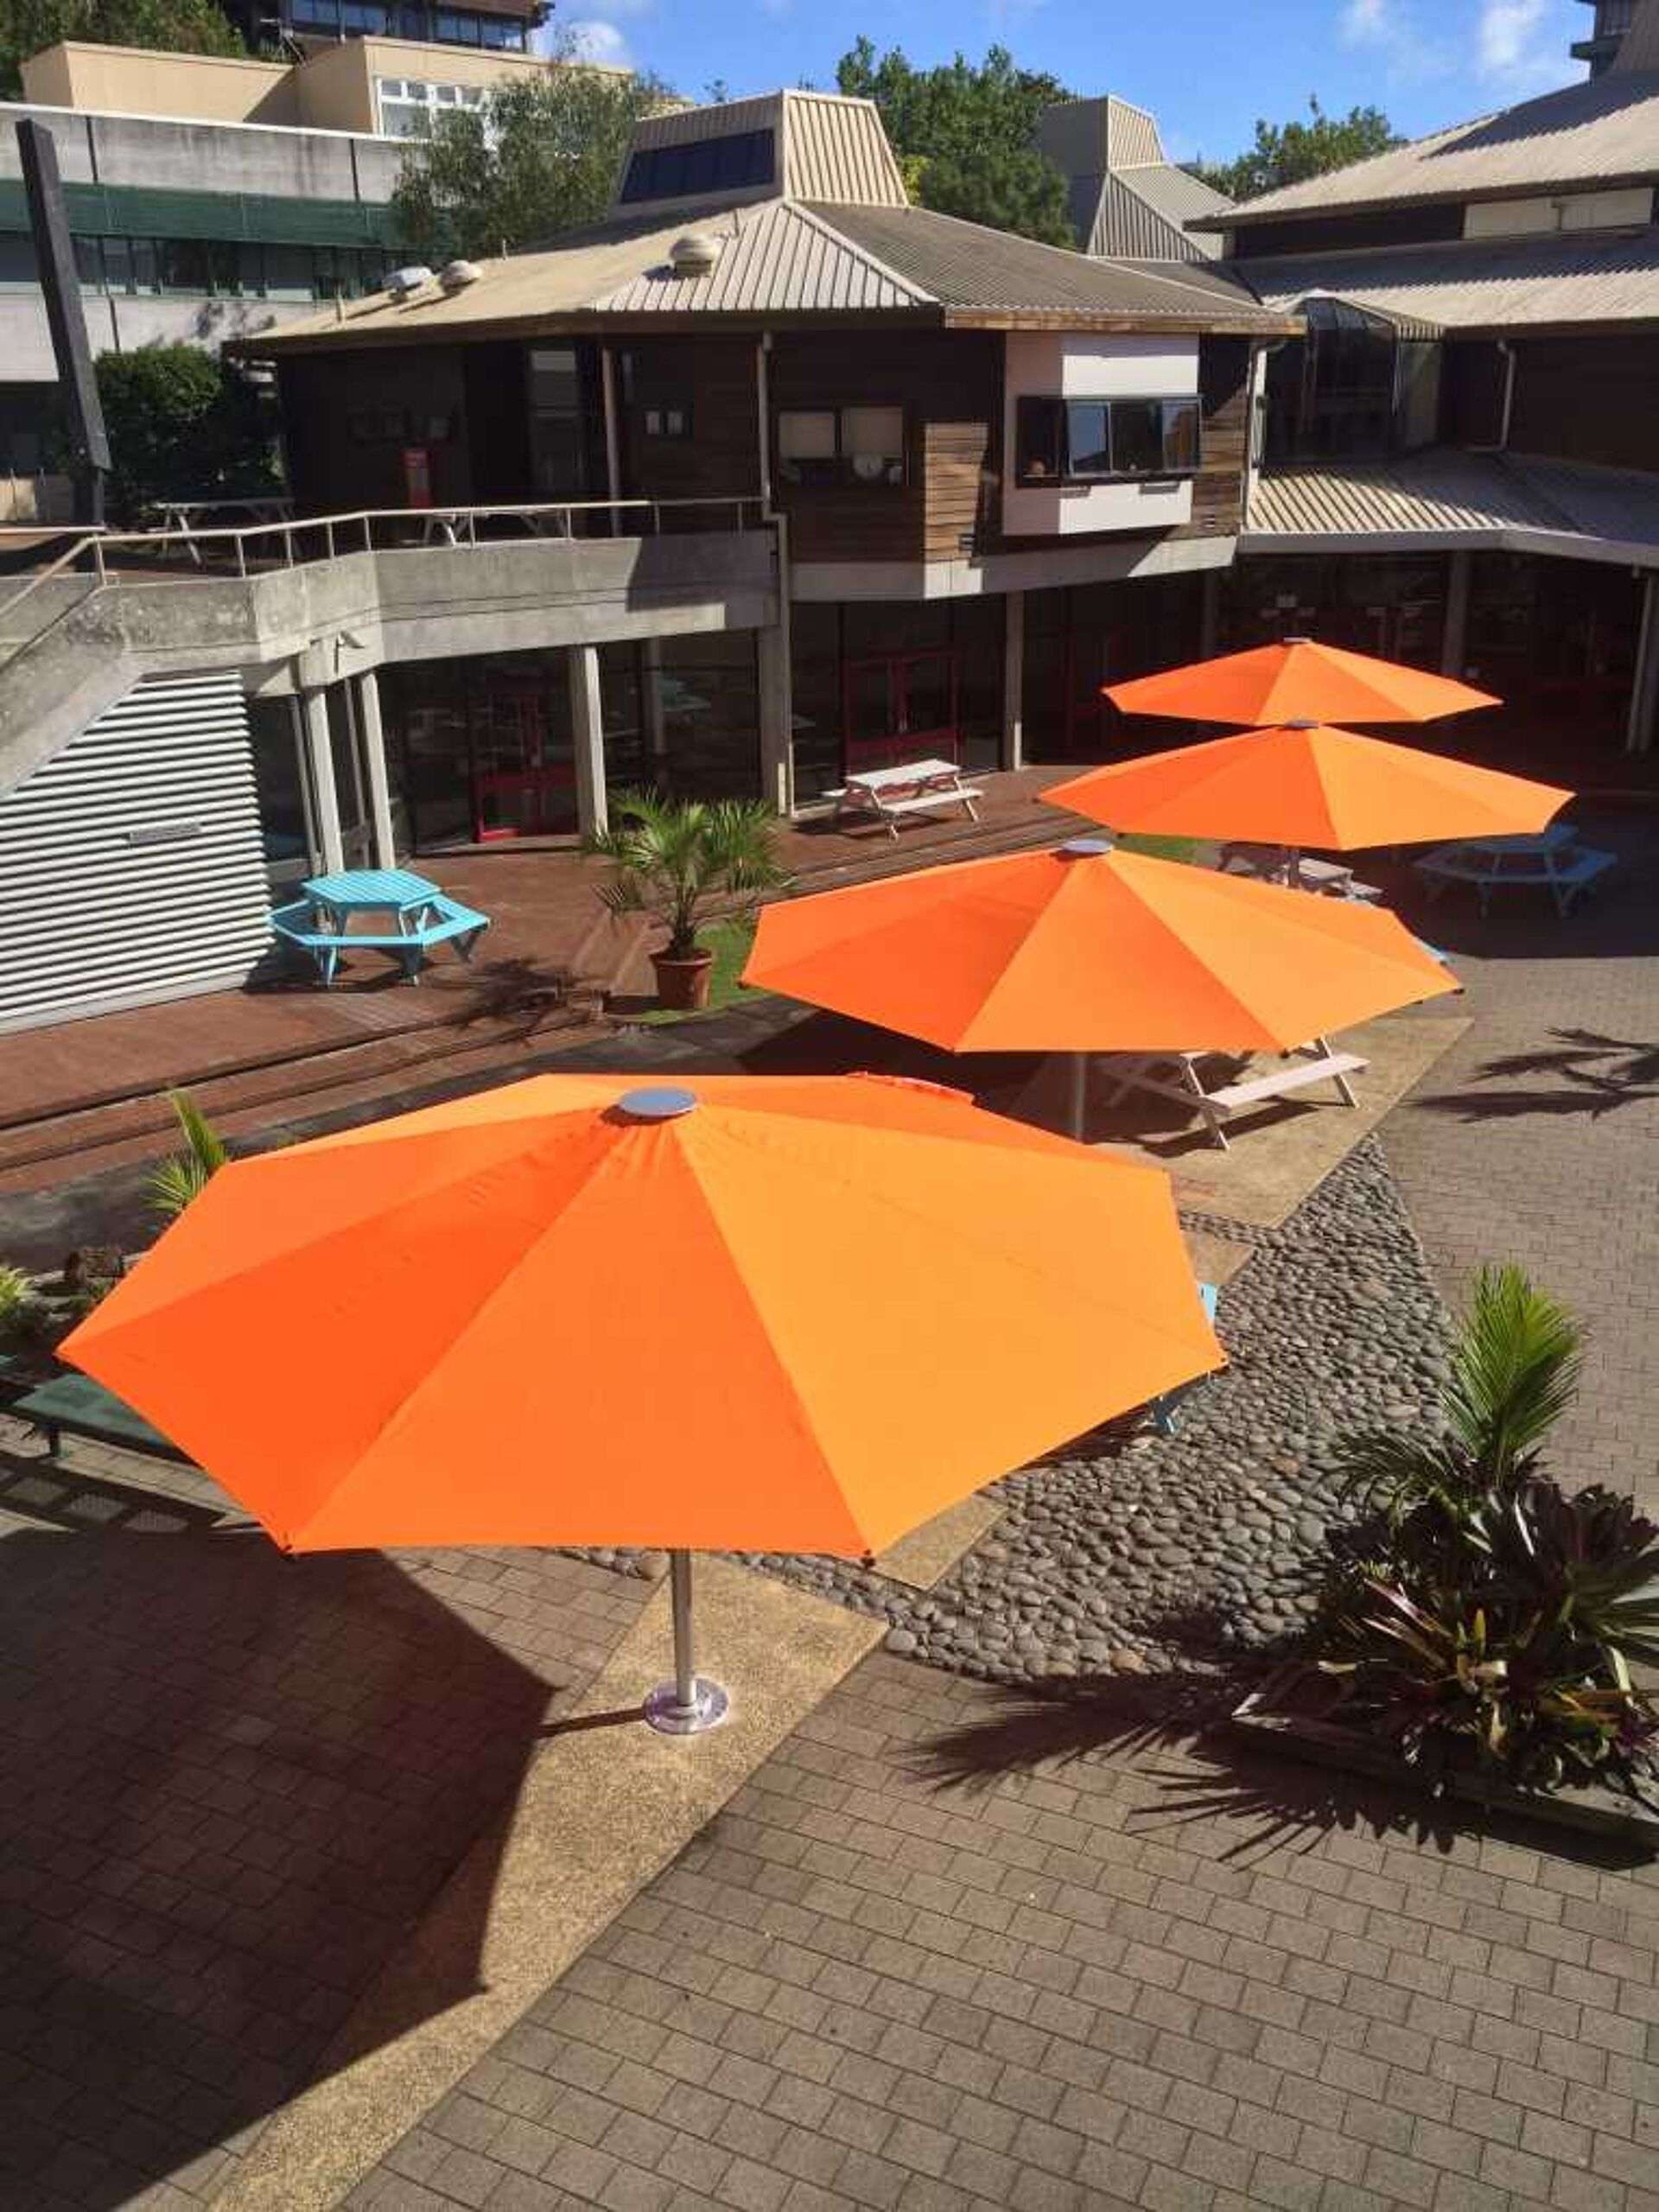 University of Auckland Tempest Commercial Outdoor Umbrella